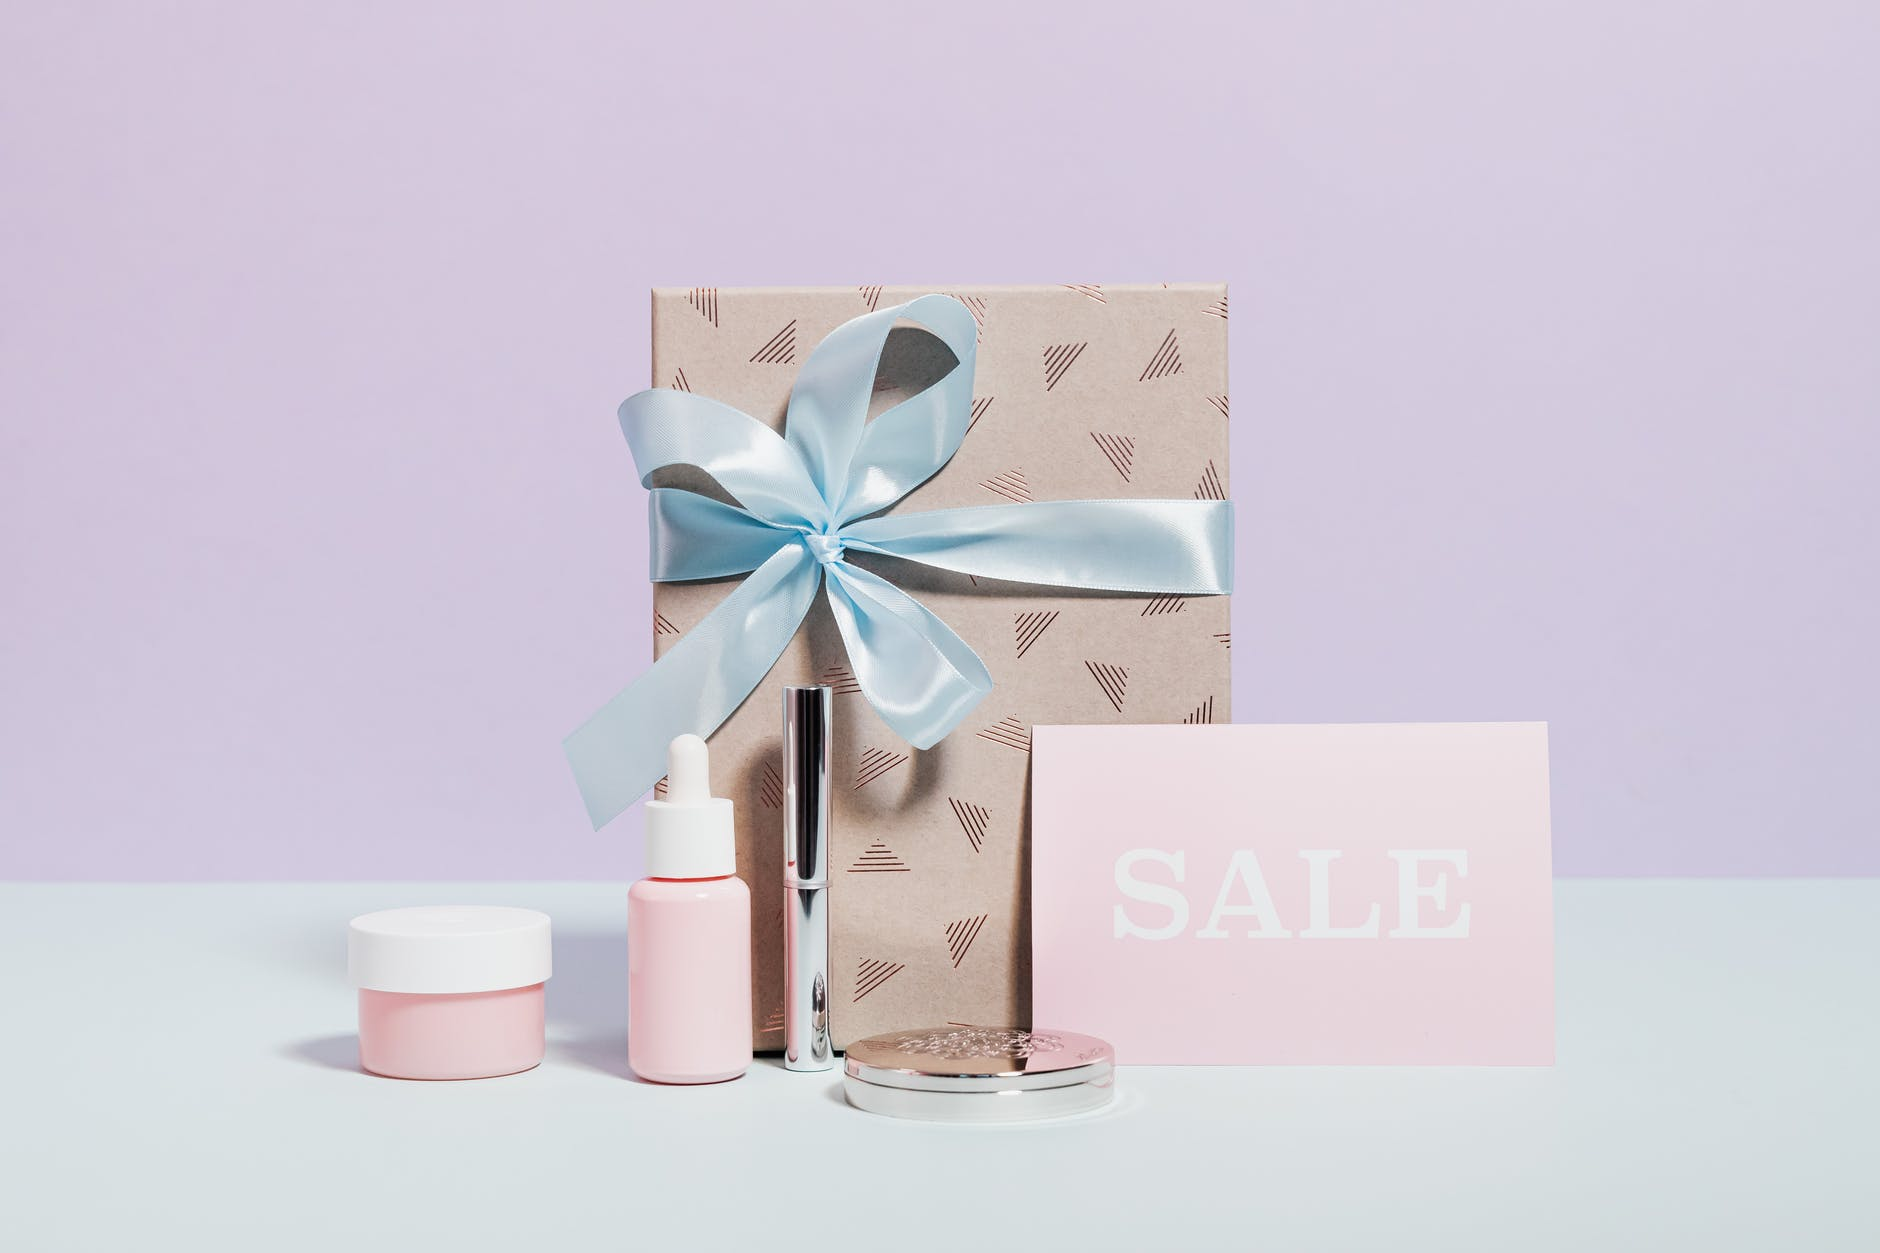 cosmetic products on sale